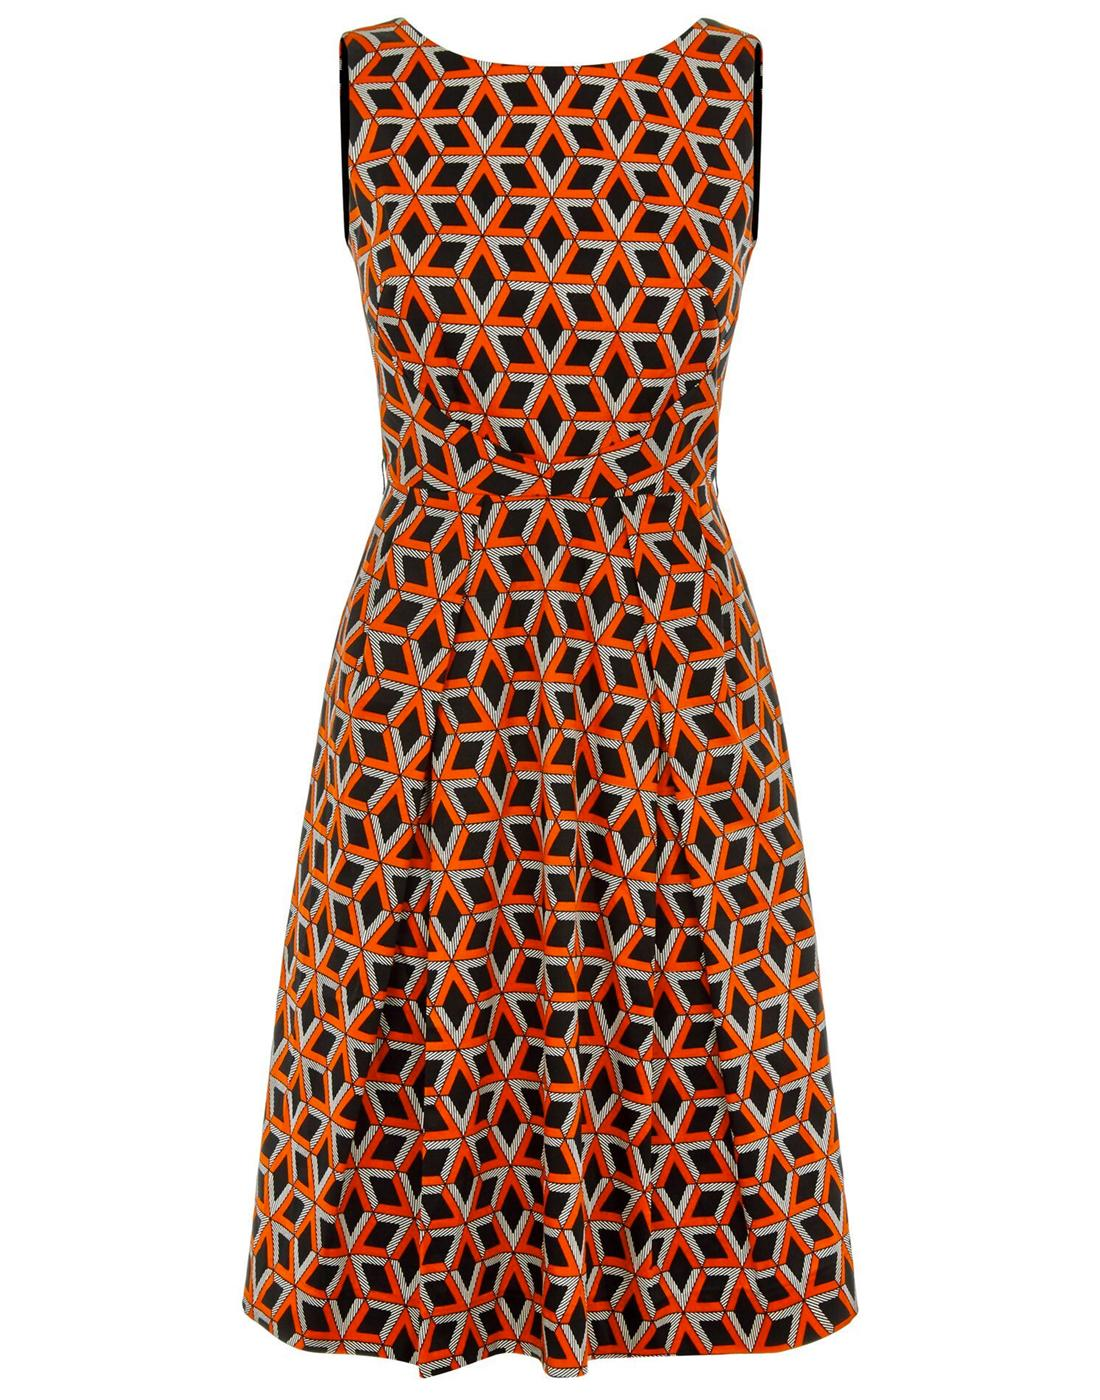 Doris TRAFFIC PEOPLE Retro 60s Pattern Party Dress